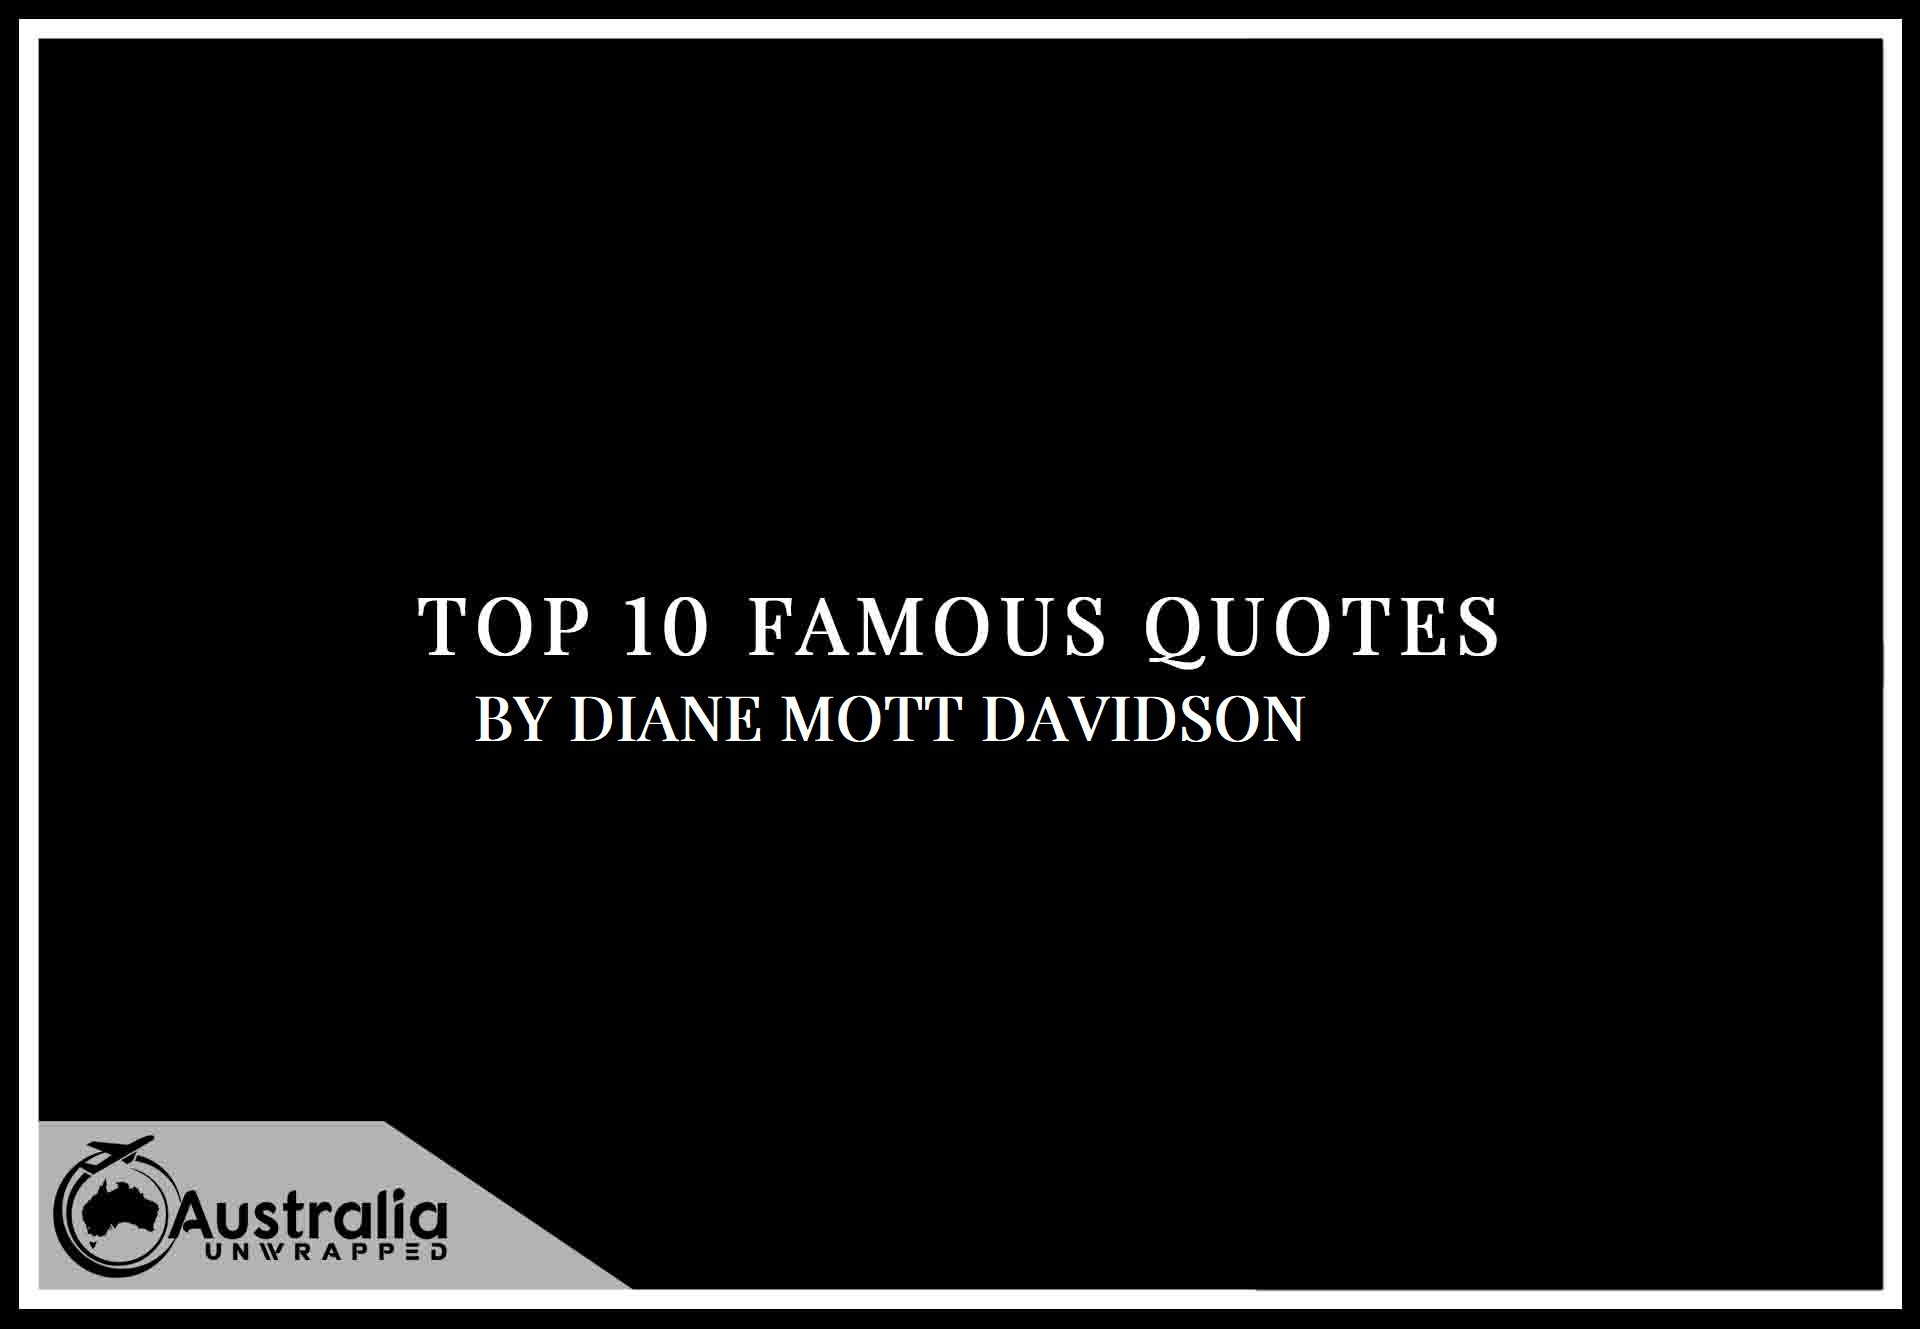 Top 10 Famous Quotes by Author Diane Mott Davidson